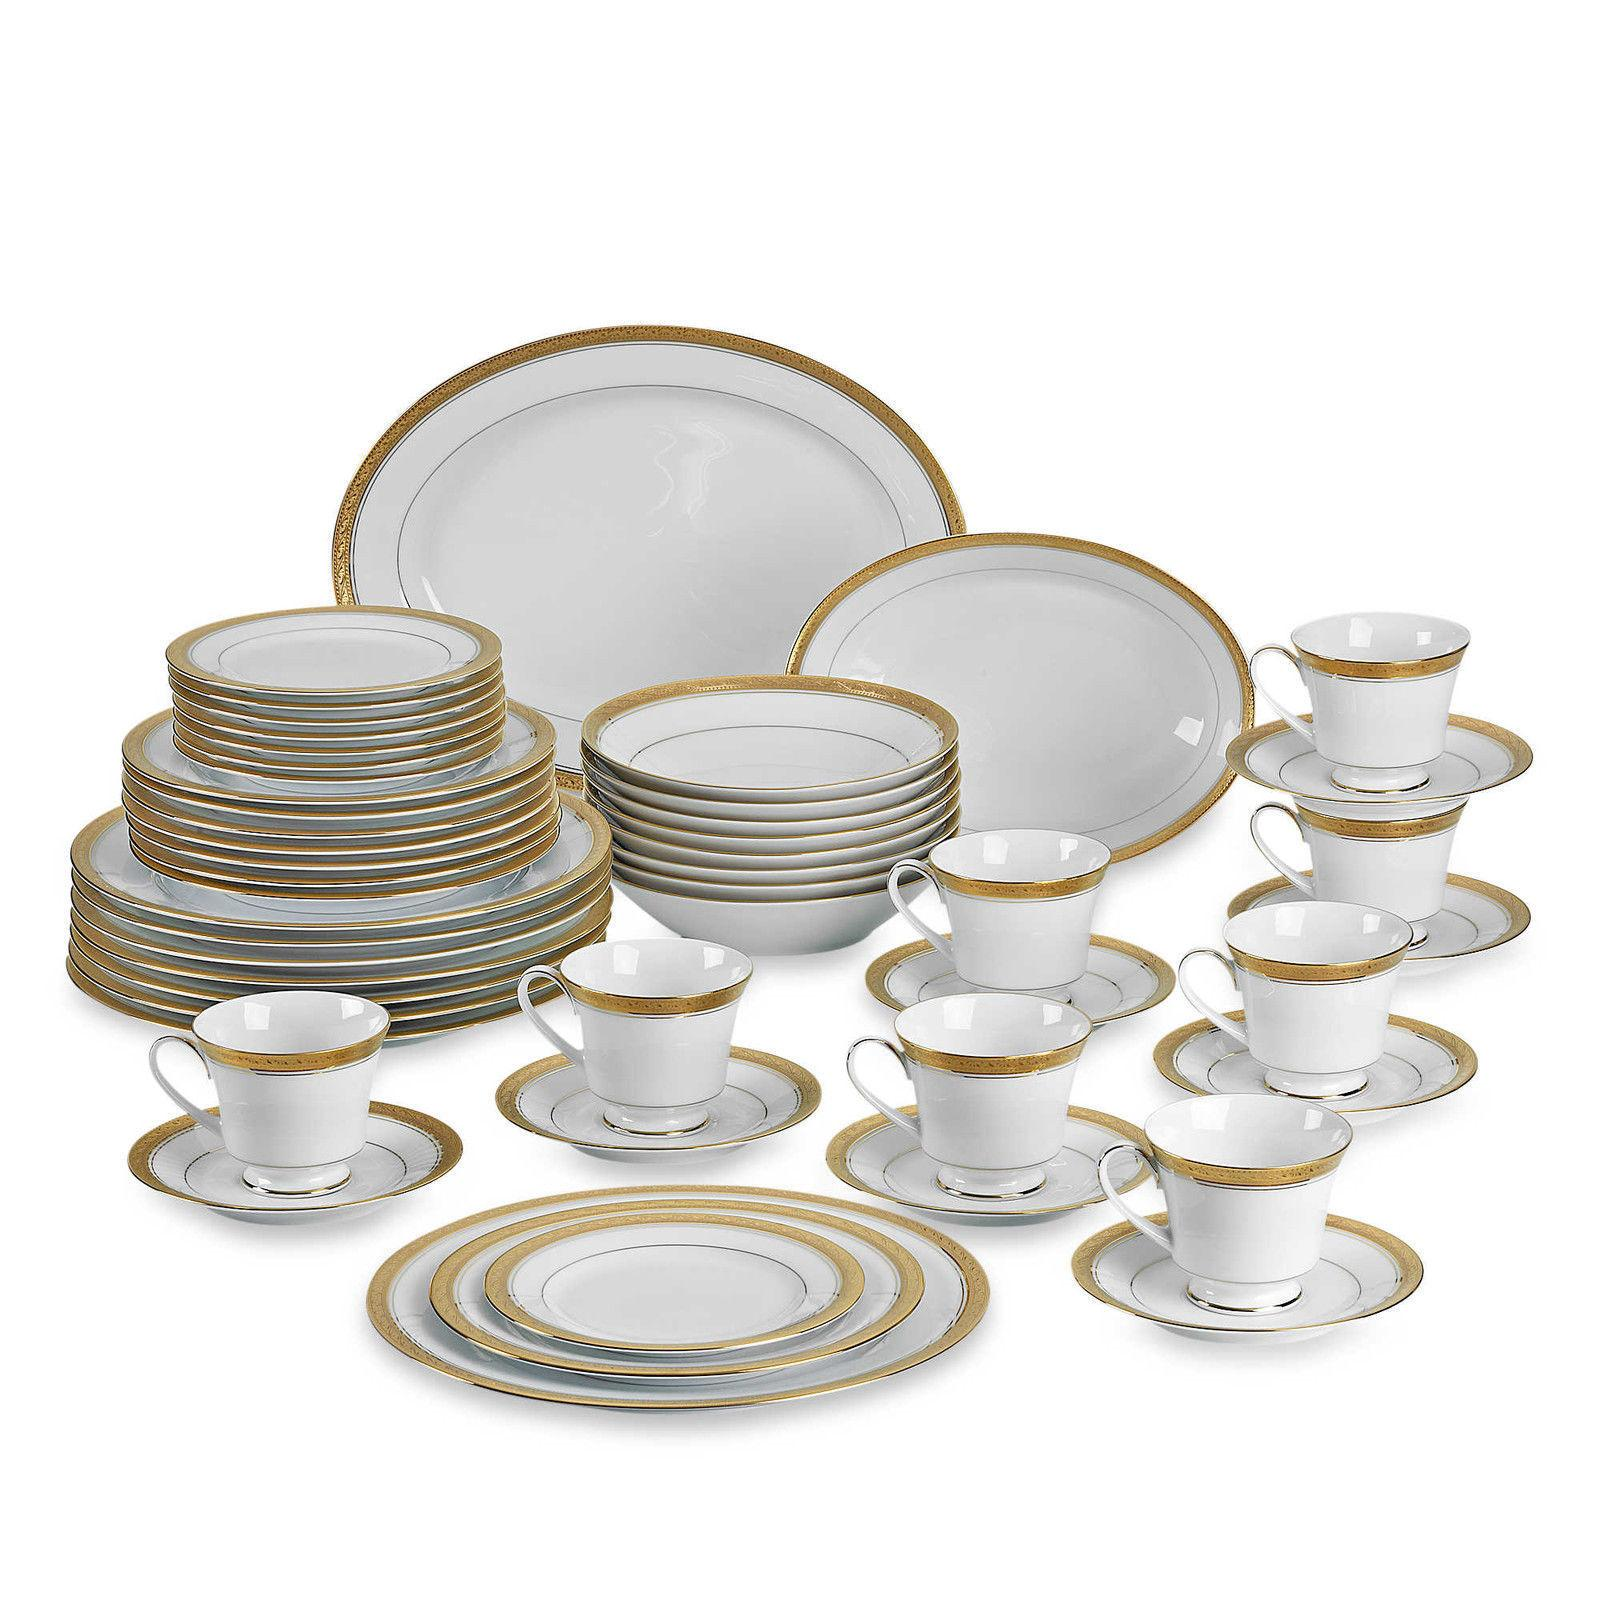 Noritake Crestwood Gold with